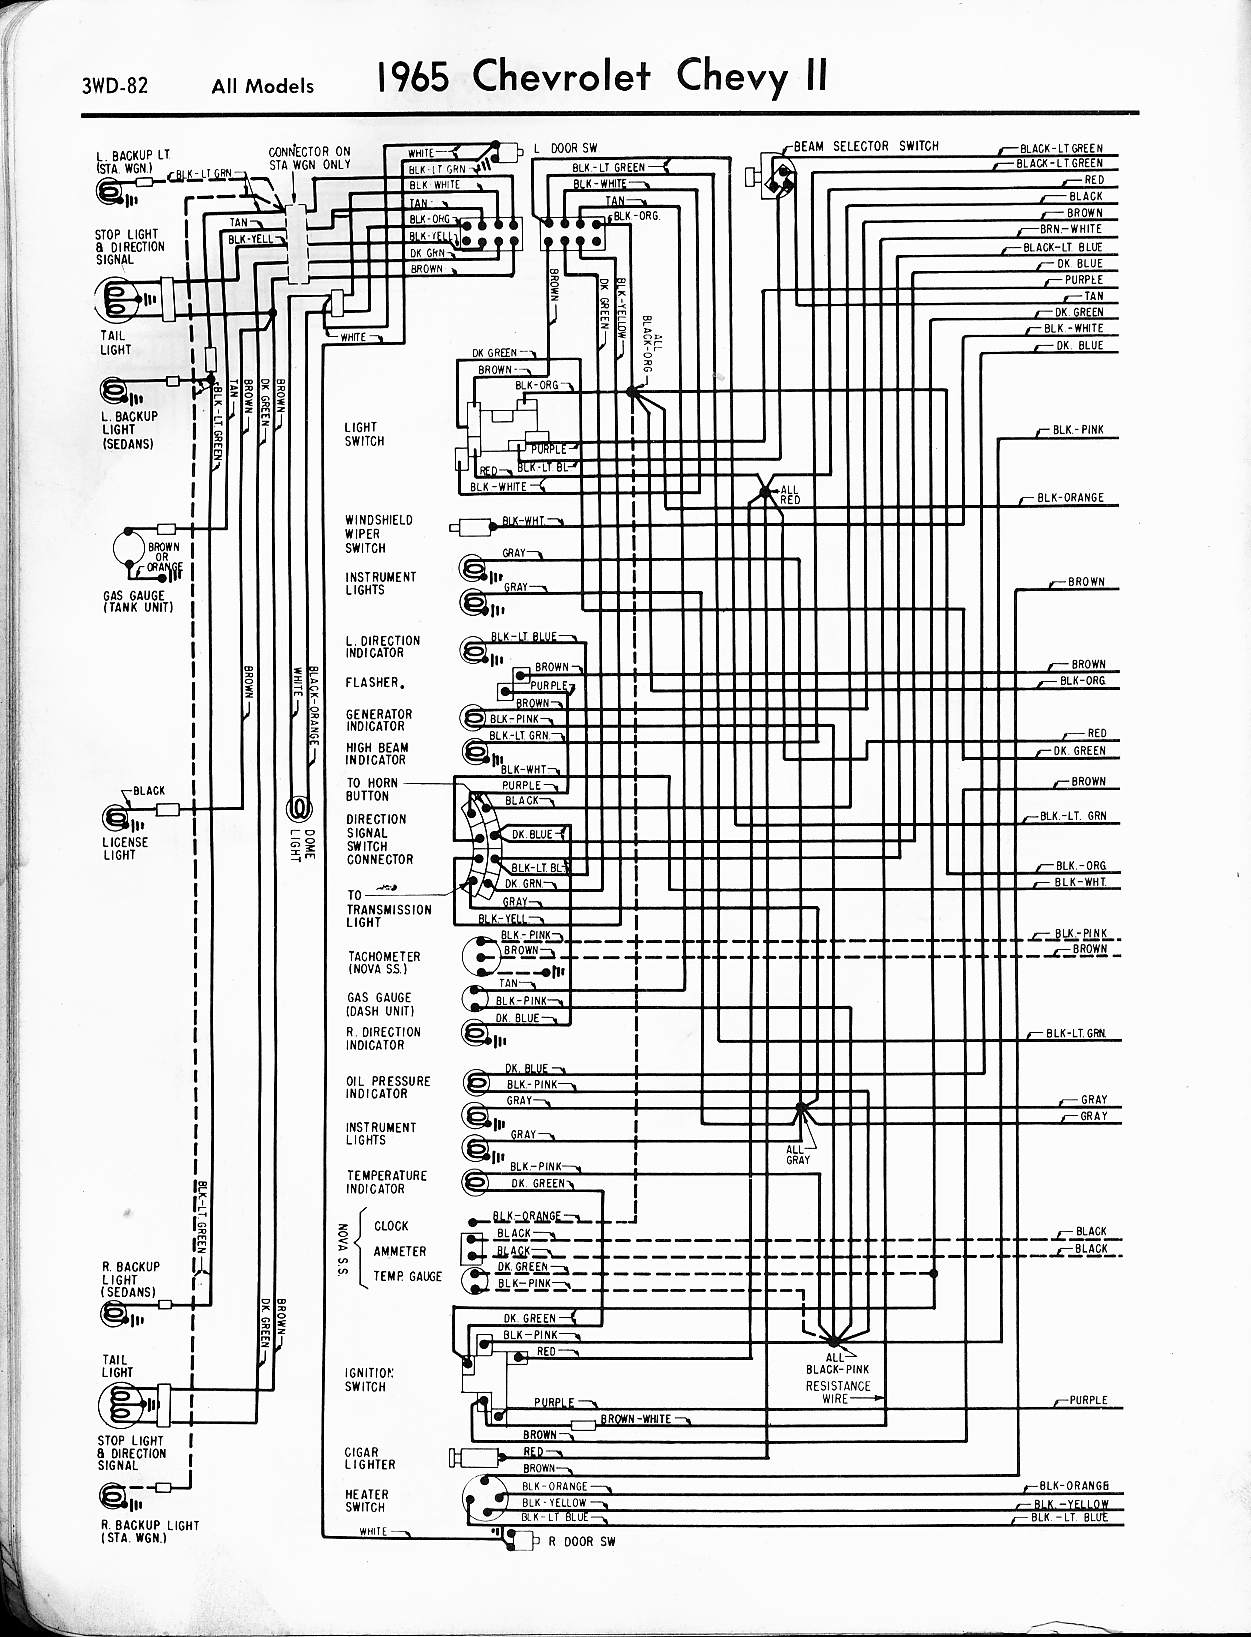 wiring diagrams chevy wiring diagram name Chevy Truck Wiring Harness Standard chevy diagrams 1997 chevy s10 wiring diagram wiring diagrams chevy